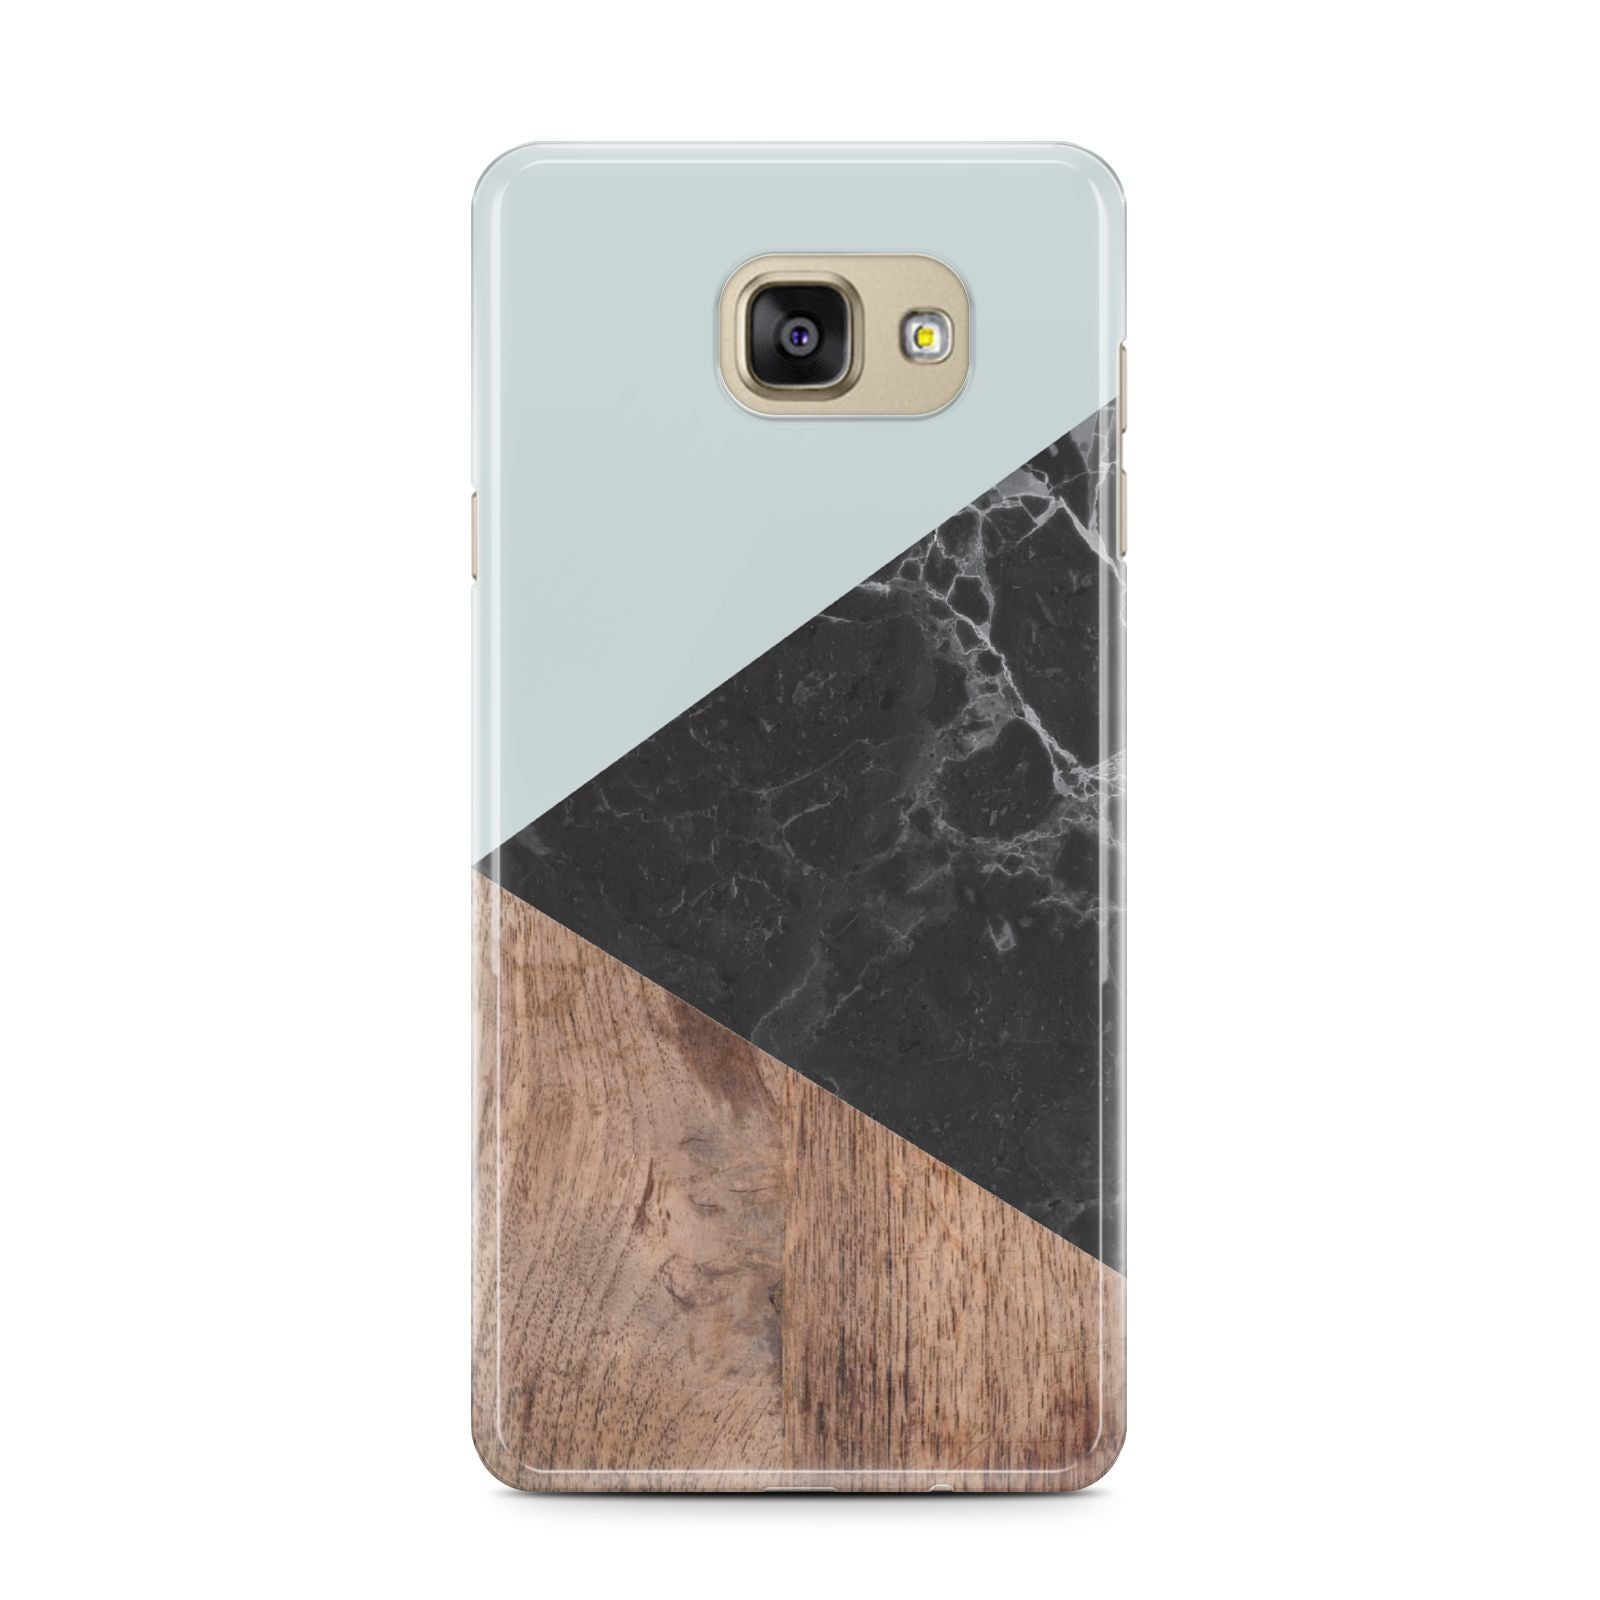 Marble Wood Geometric 2 Samsung Galaxy A7 2016 Case on gold phone